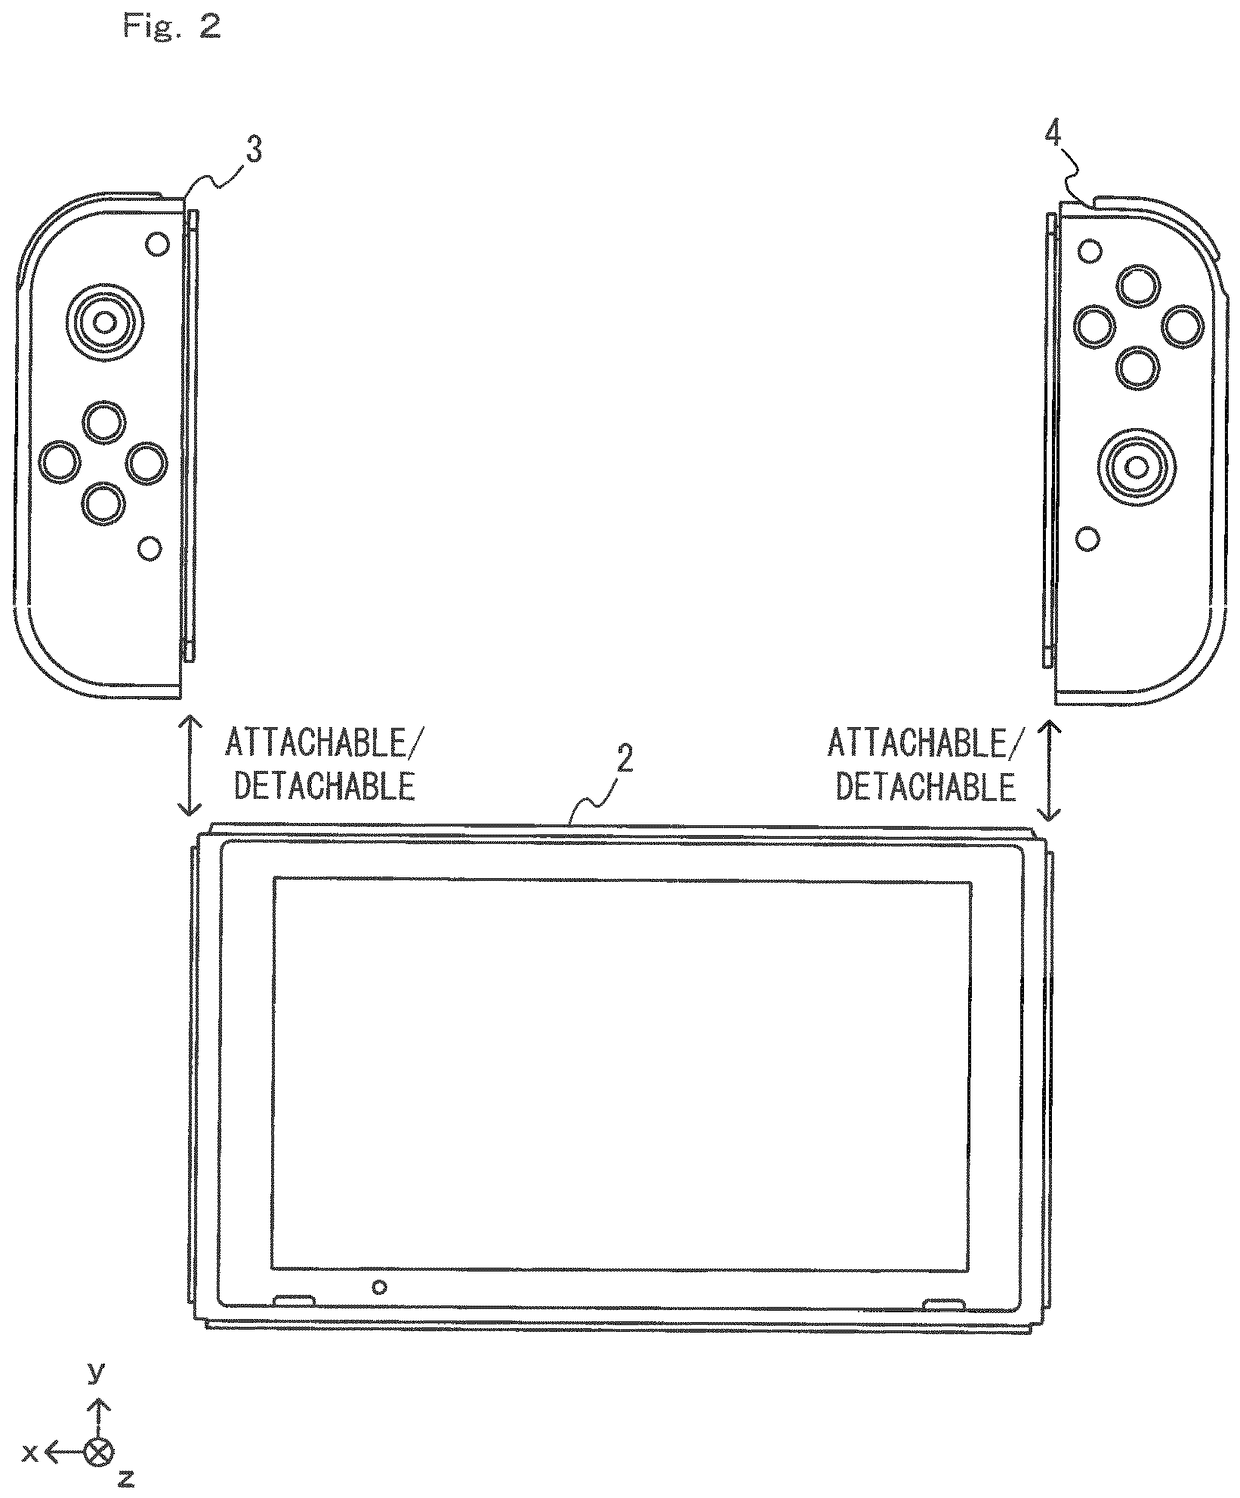 EP3269434A1 - SUPPORTING DEVICE, CHARGING DEVICE AND CONTROLLER SYSTEM